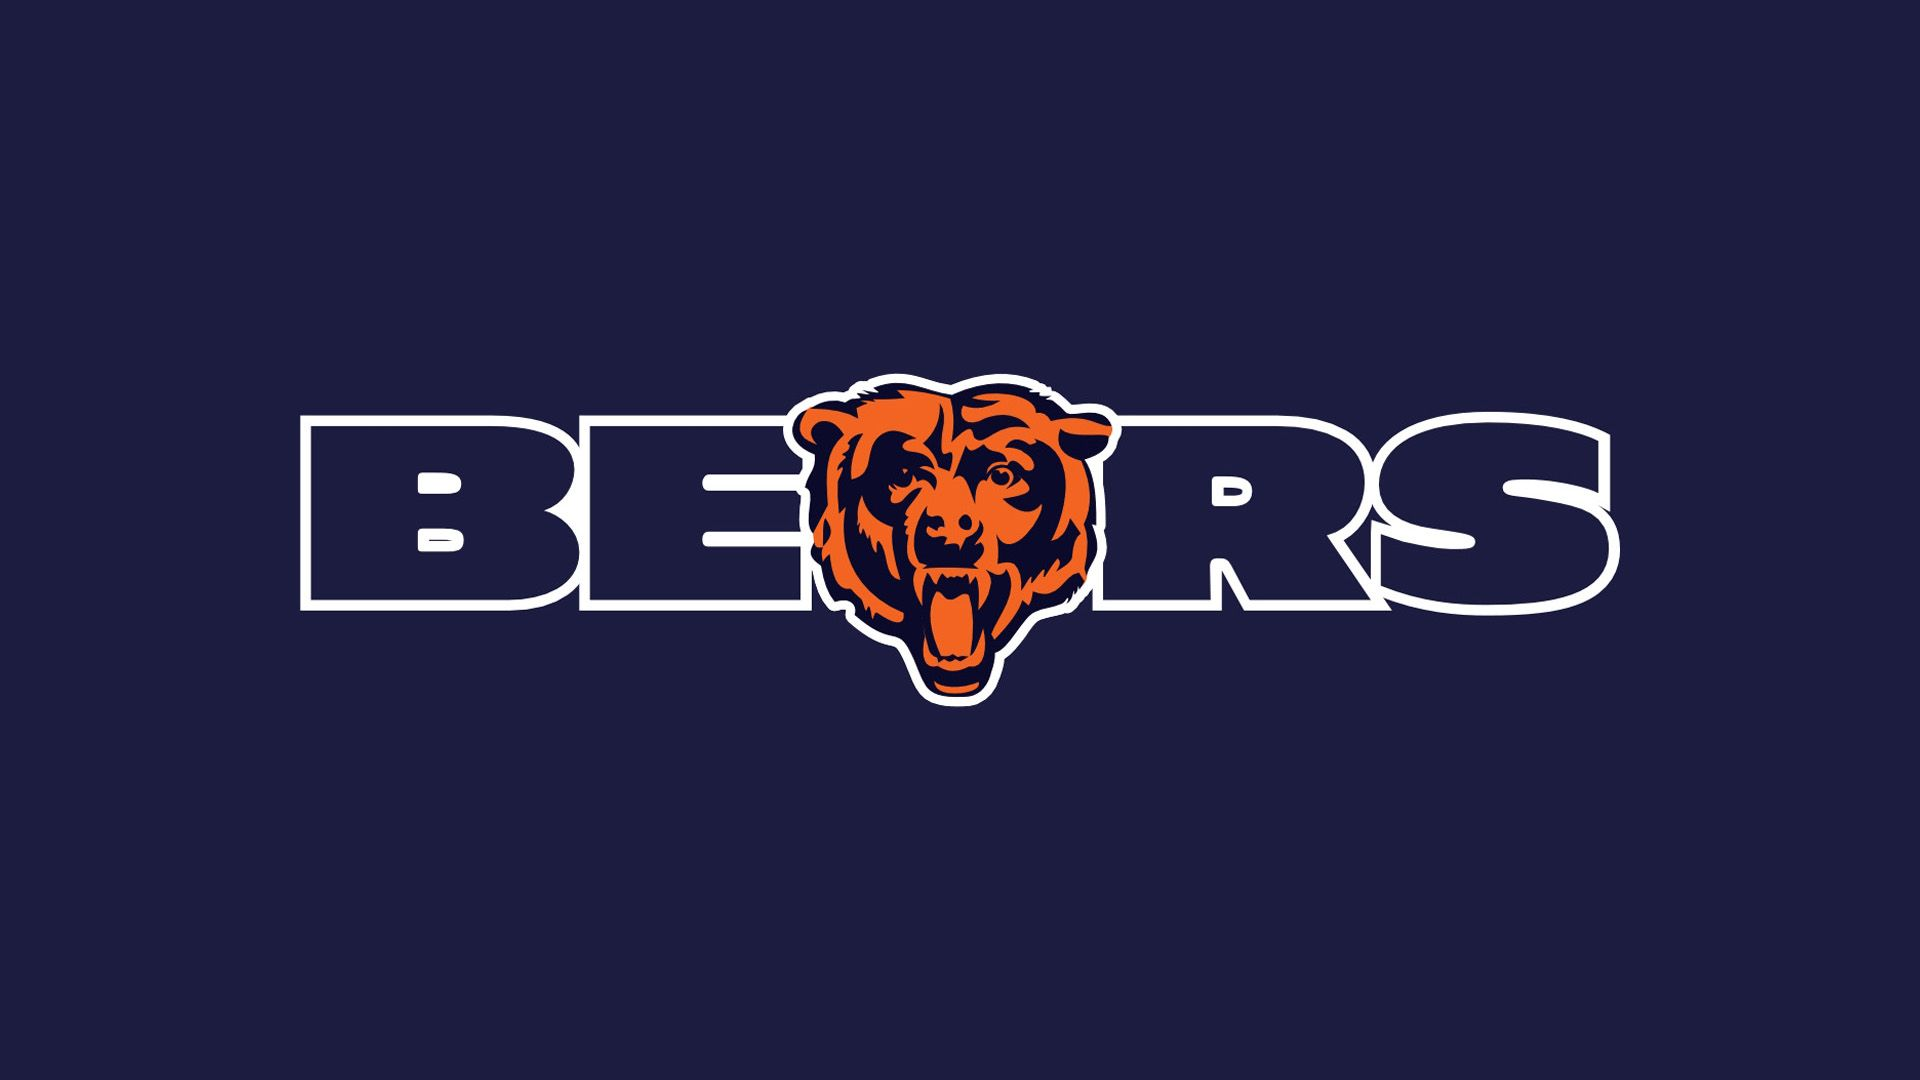 Chicago Bears Logo Wallpaper 44442 1920x1080 px ~ HDWallSource.com